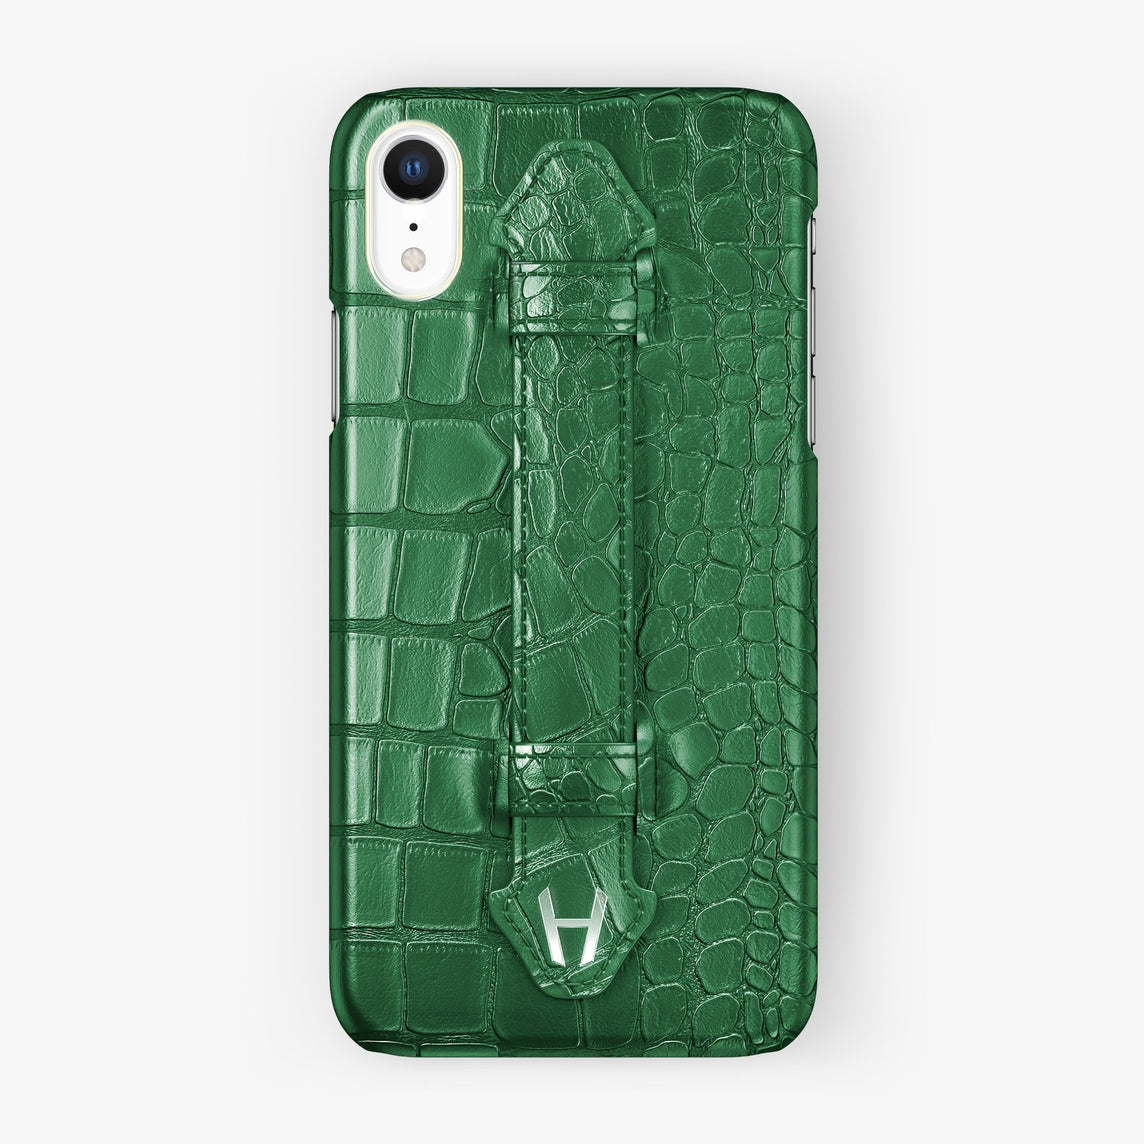 Alligator [iPhone Finger Case] [model:iphone-xr-case] [colour:green] [finishing:stainless-steel]